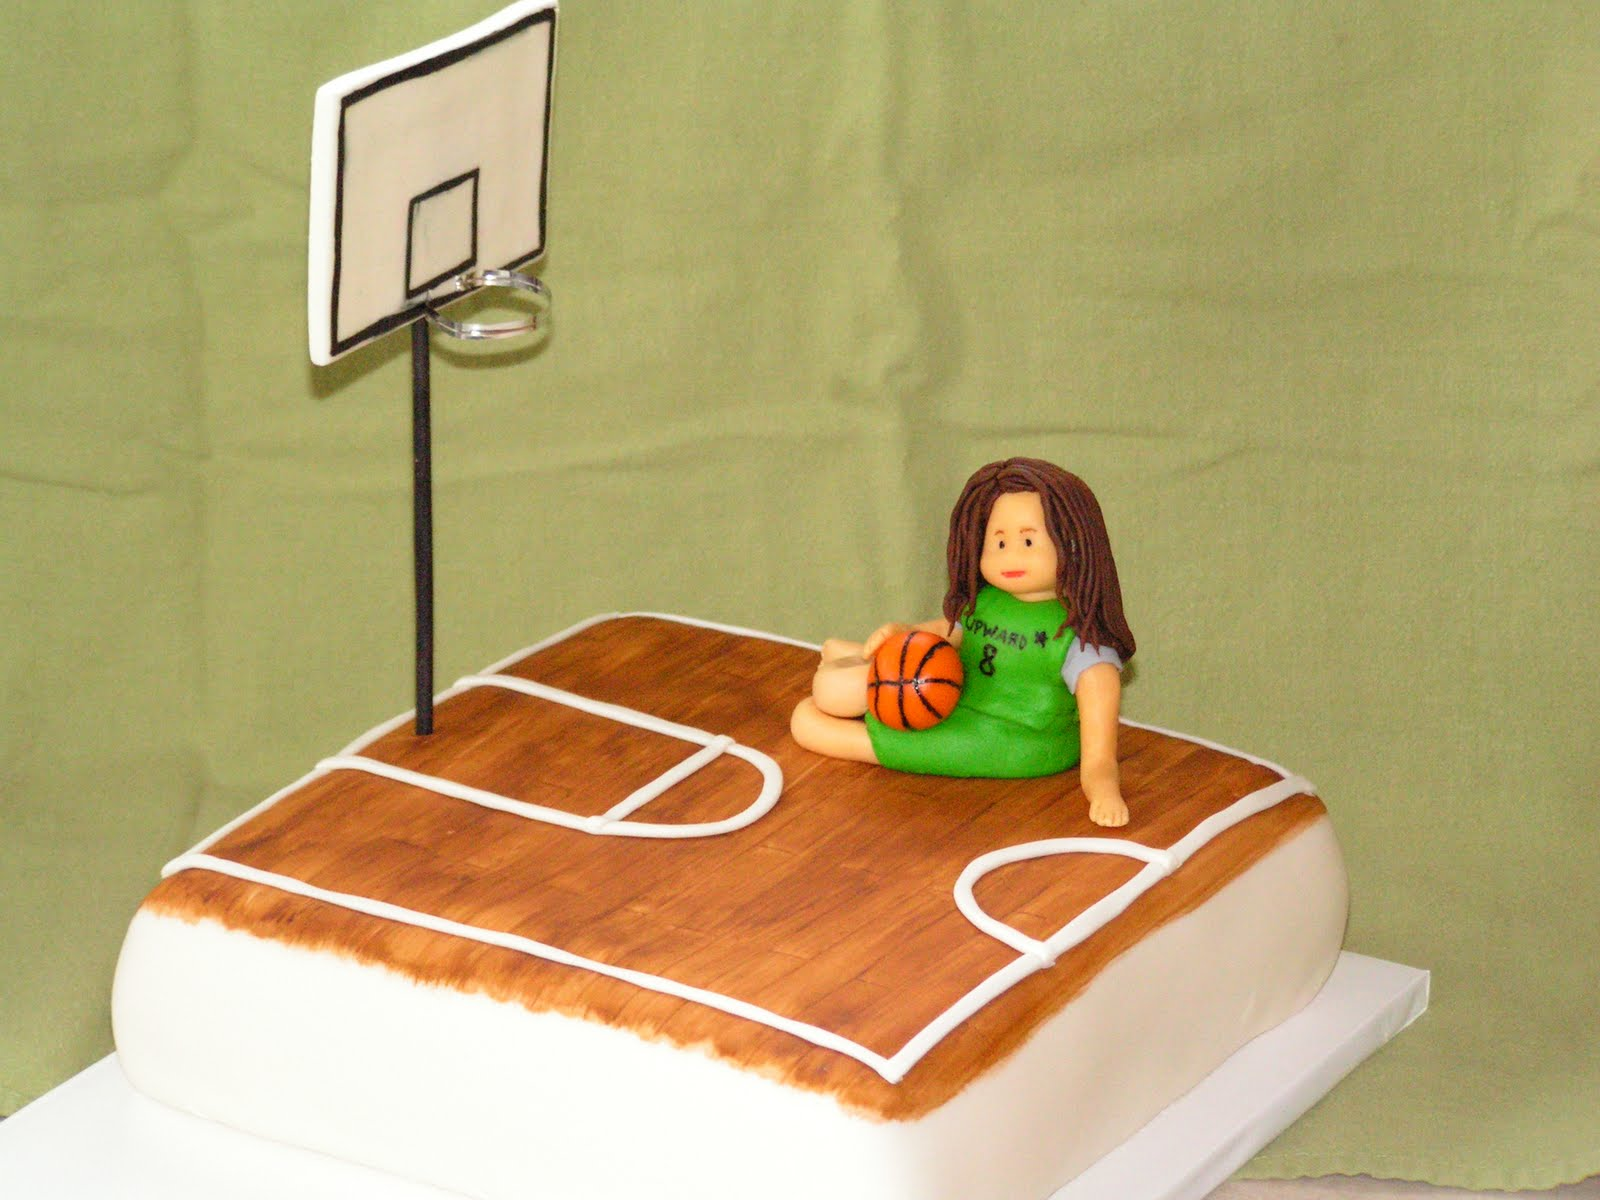 Carries Custom Cakes and Cookies Sheet Cakes and rounds not so